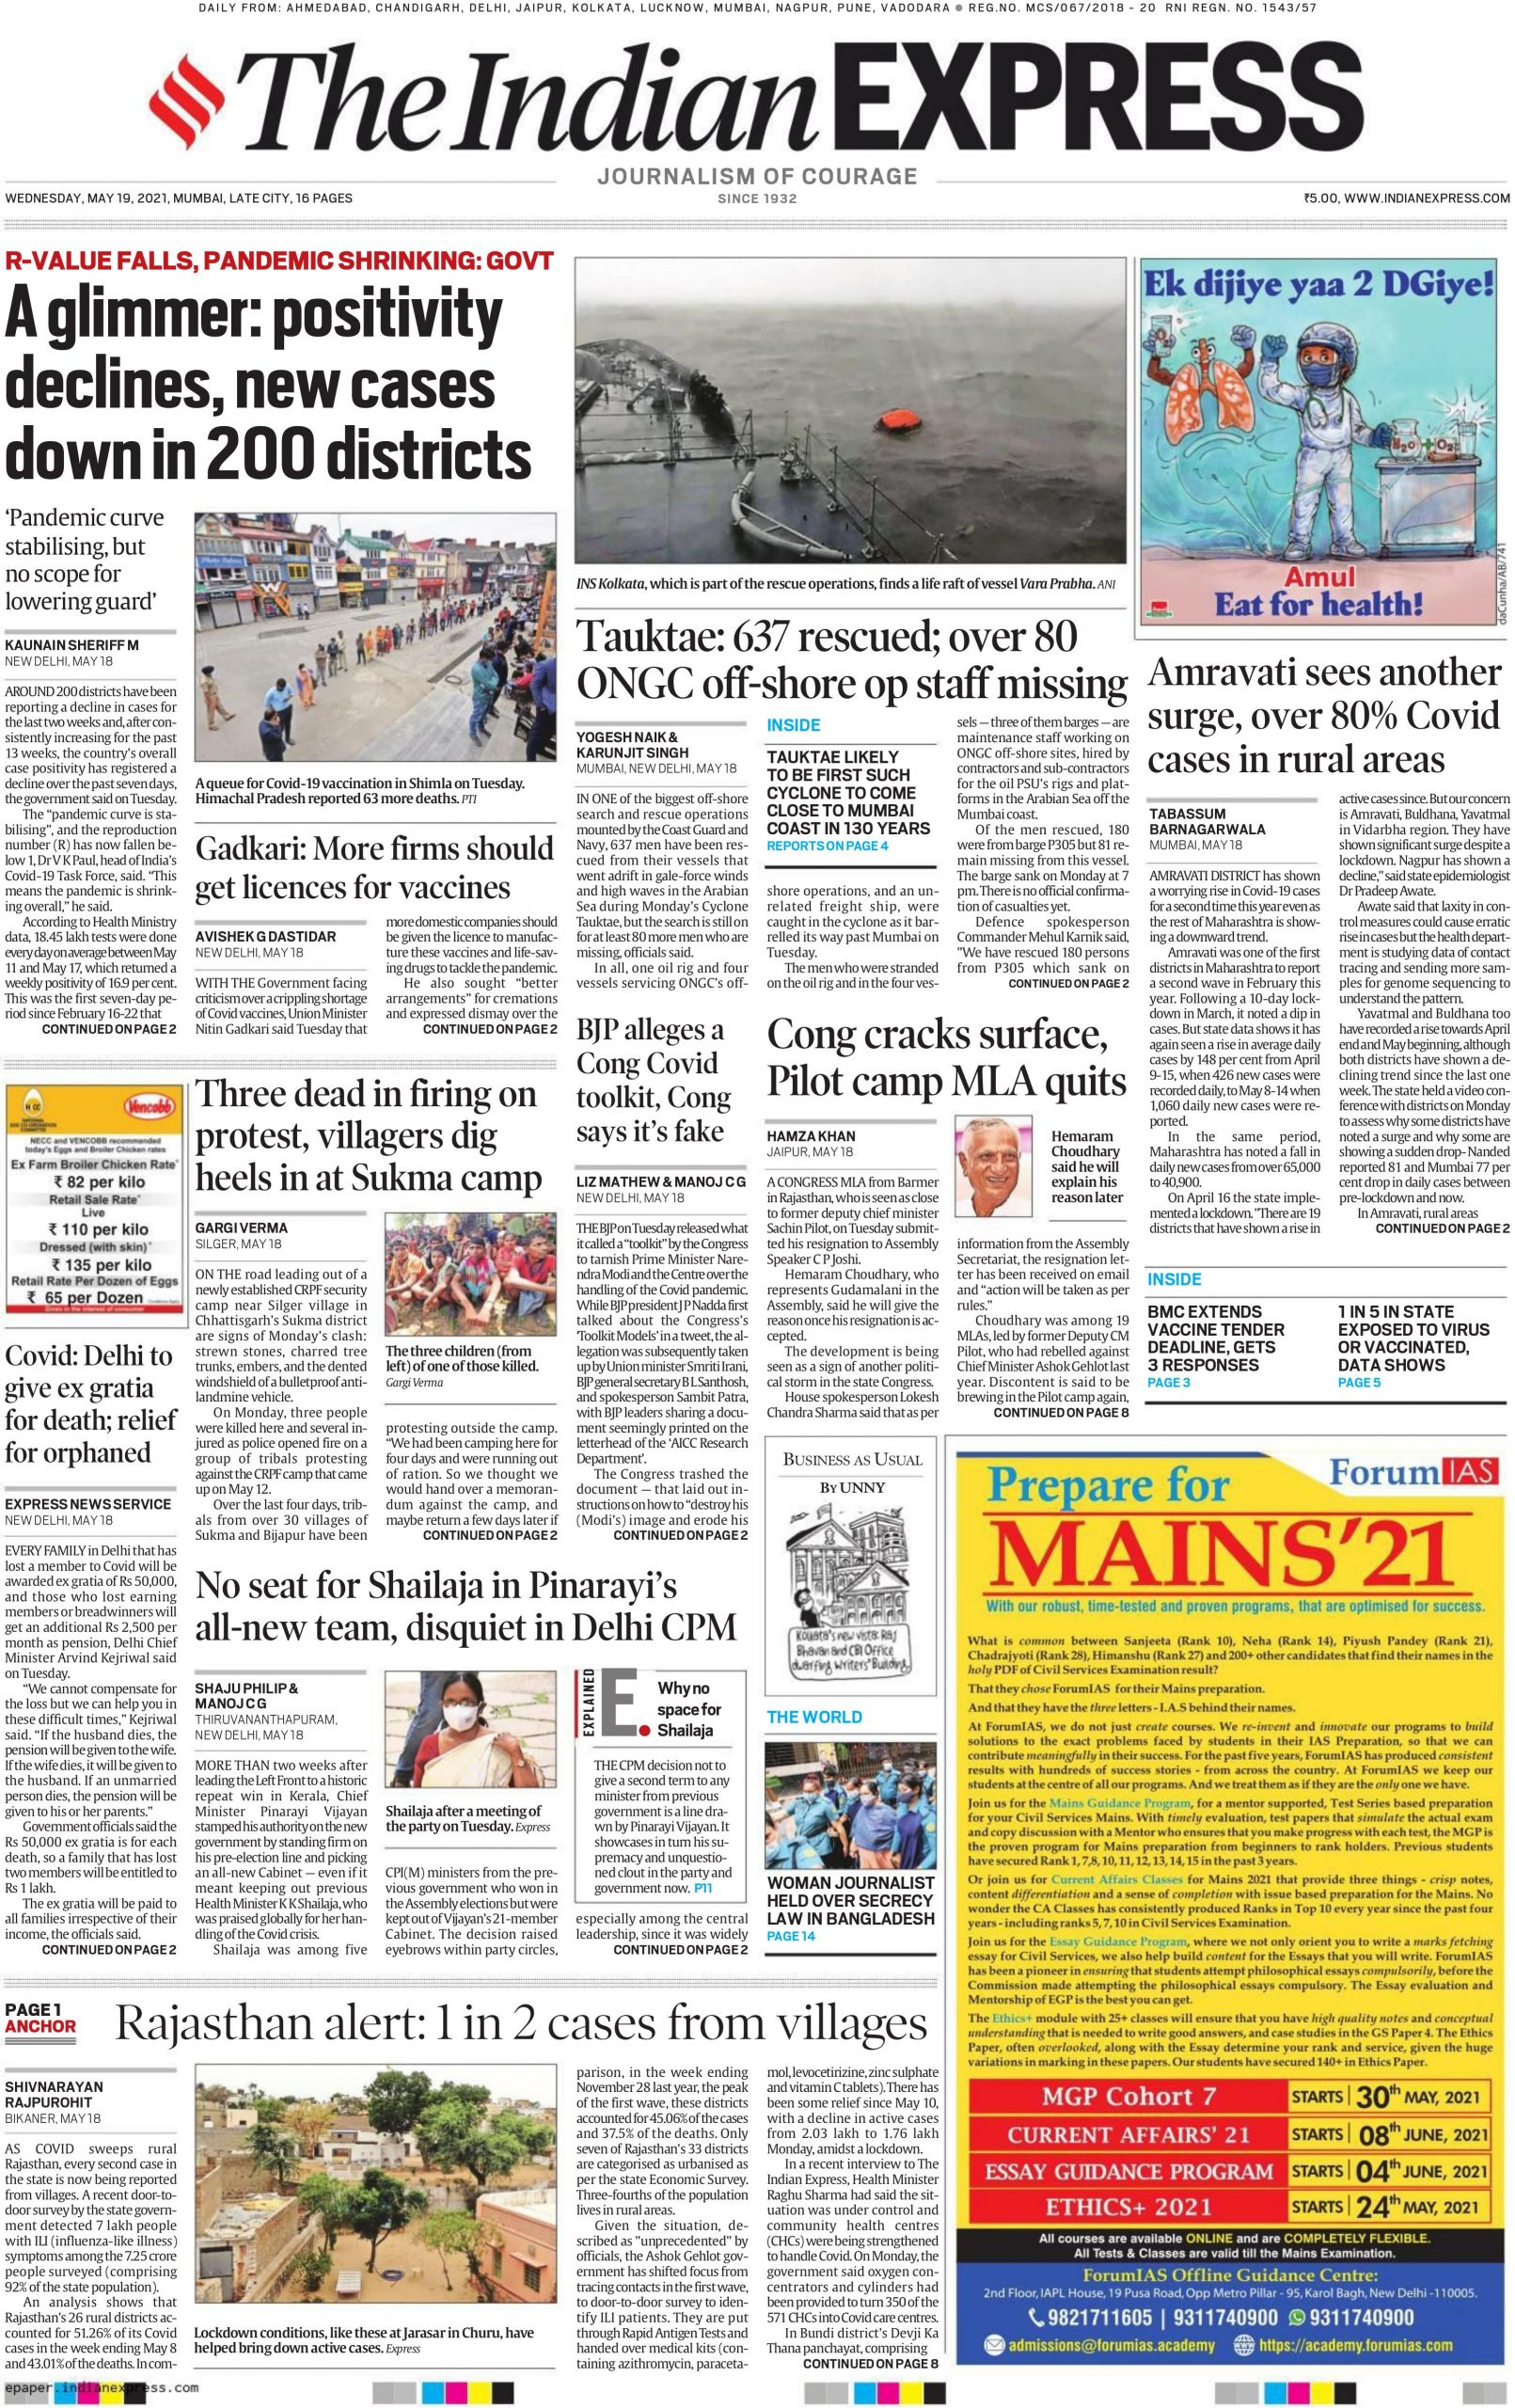 The Indian Express 19th May 2021